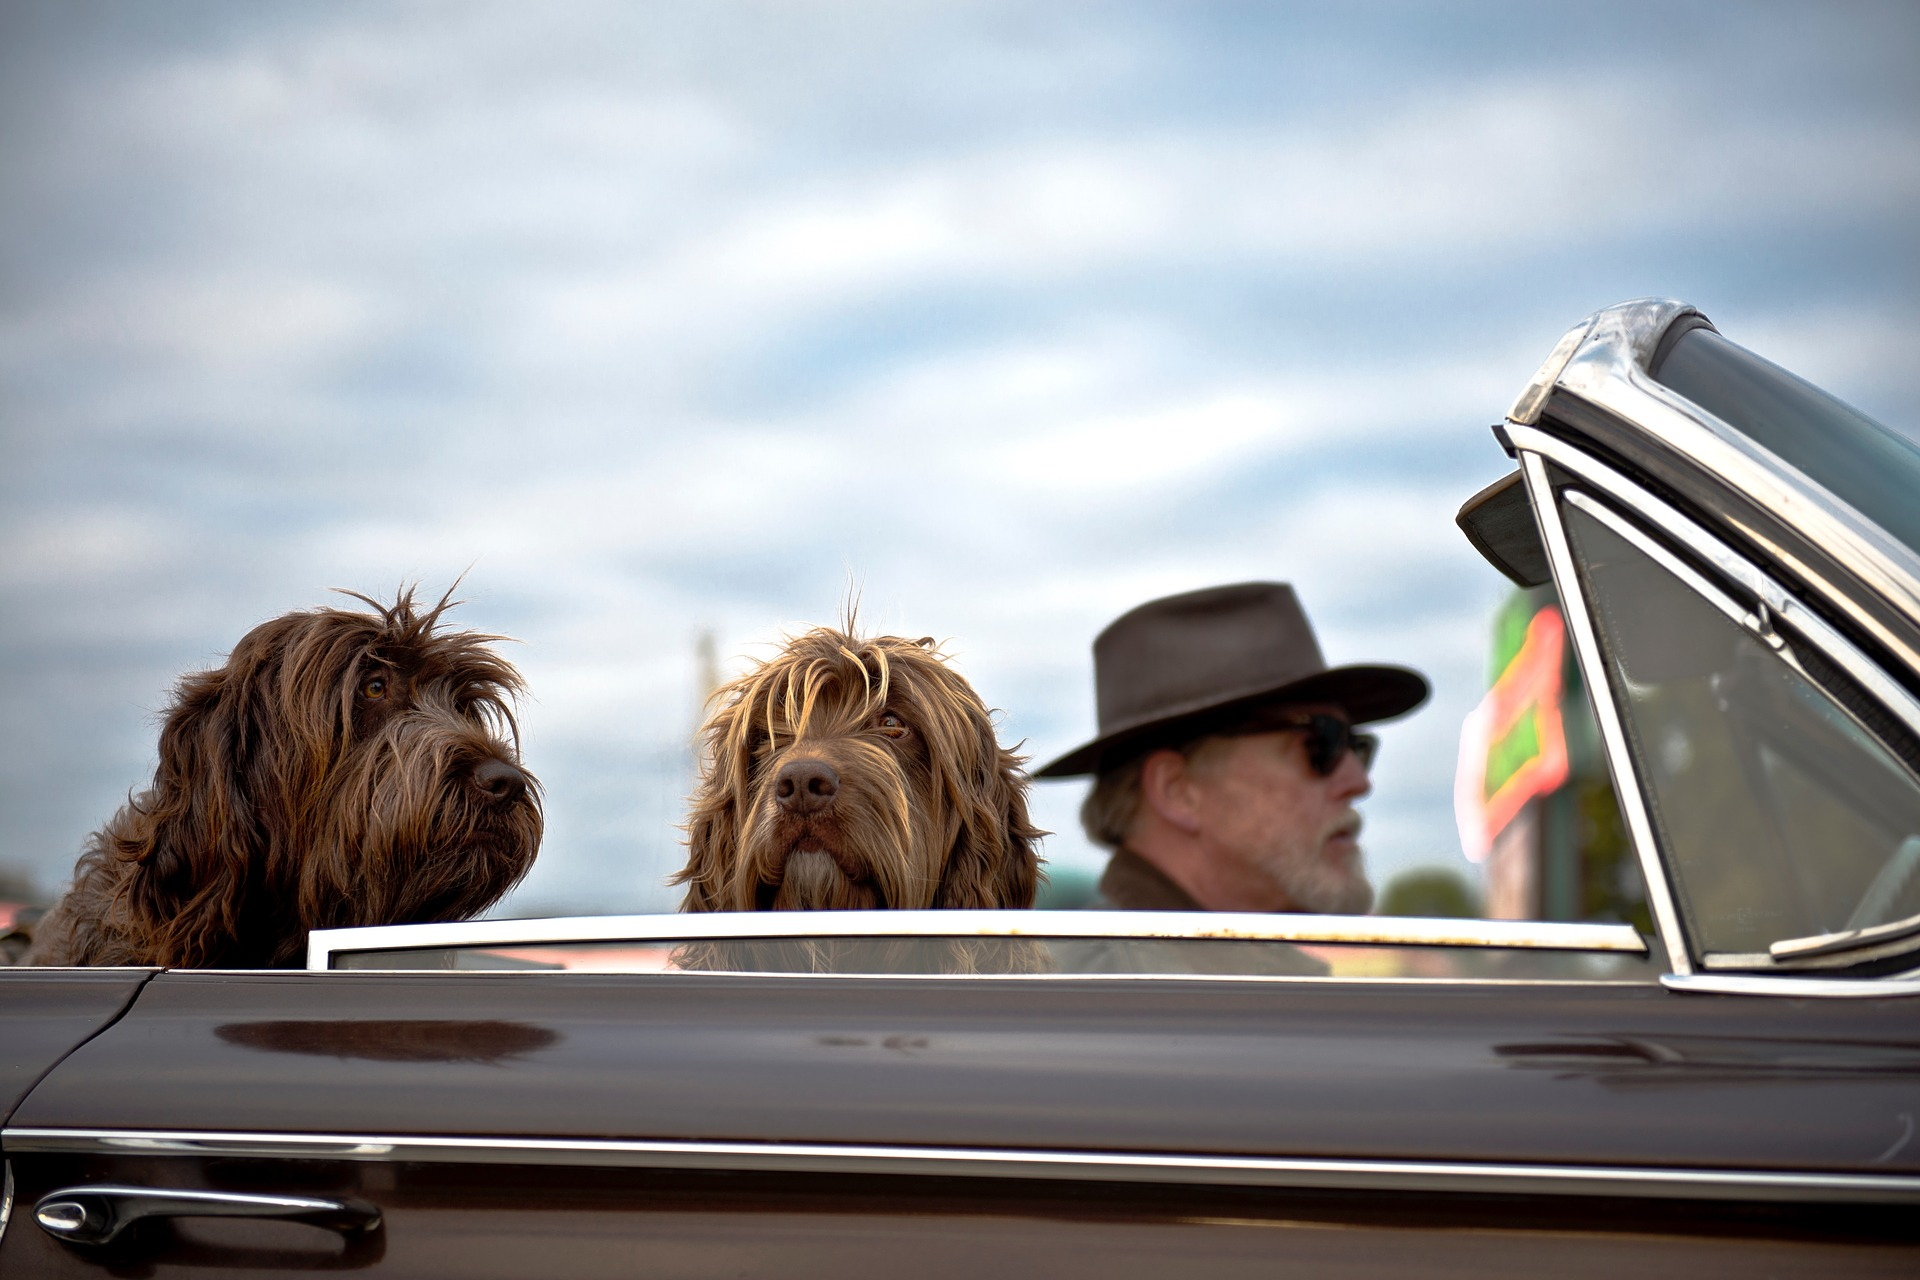 6 Tips for Stress-Free Traveling with Your Favorite Pooch